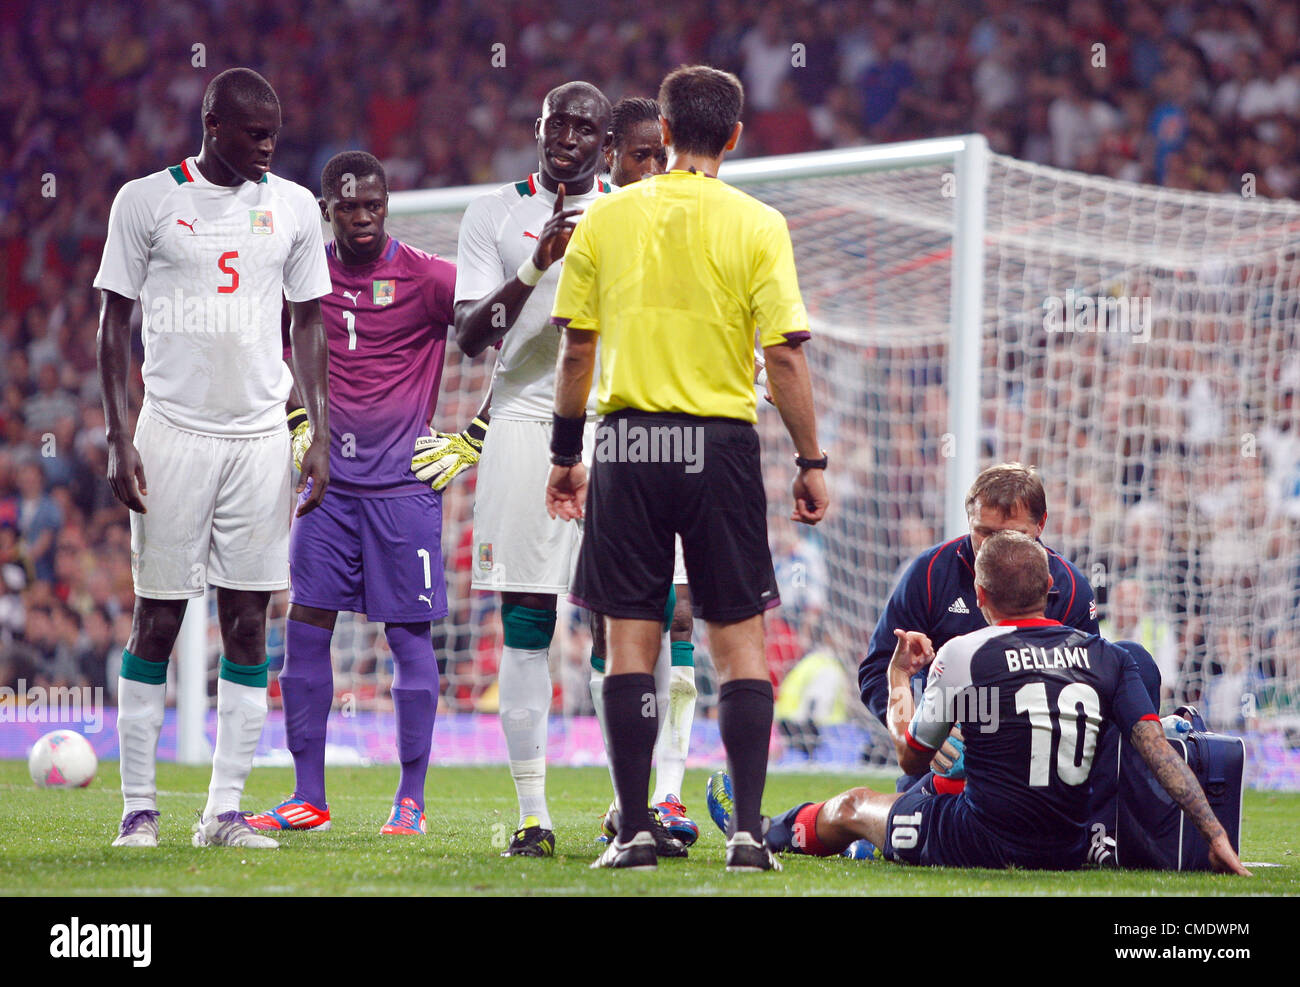 SENEGAL PLAYERS APPEAL AFTER C GREAT BRITAIN V SENEGAL OLD TRAFFORD MANCHESTER ENGLAND 26 July 2012 - Stock Image